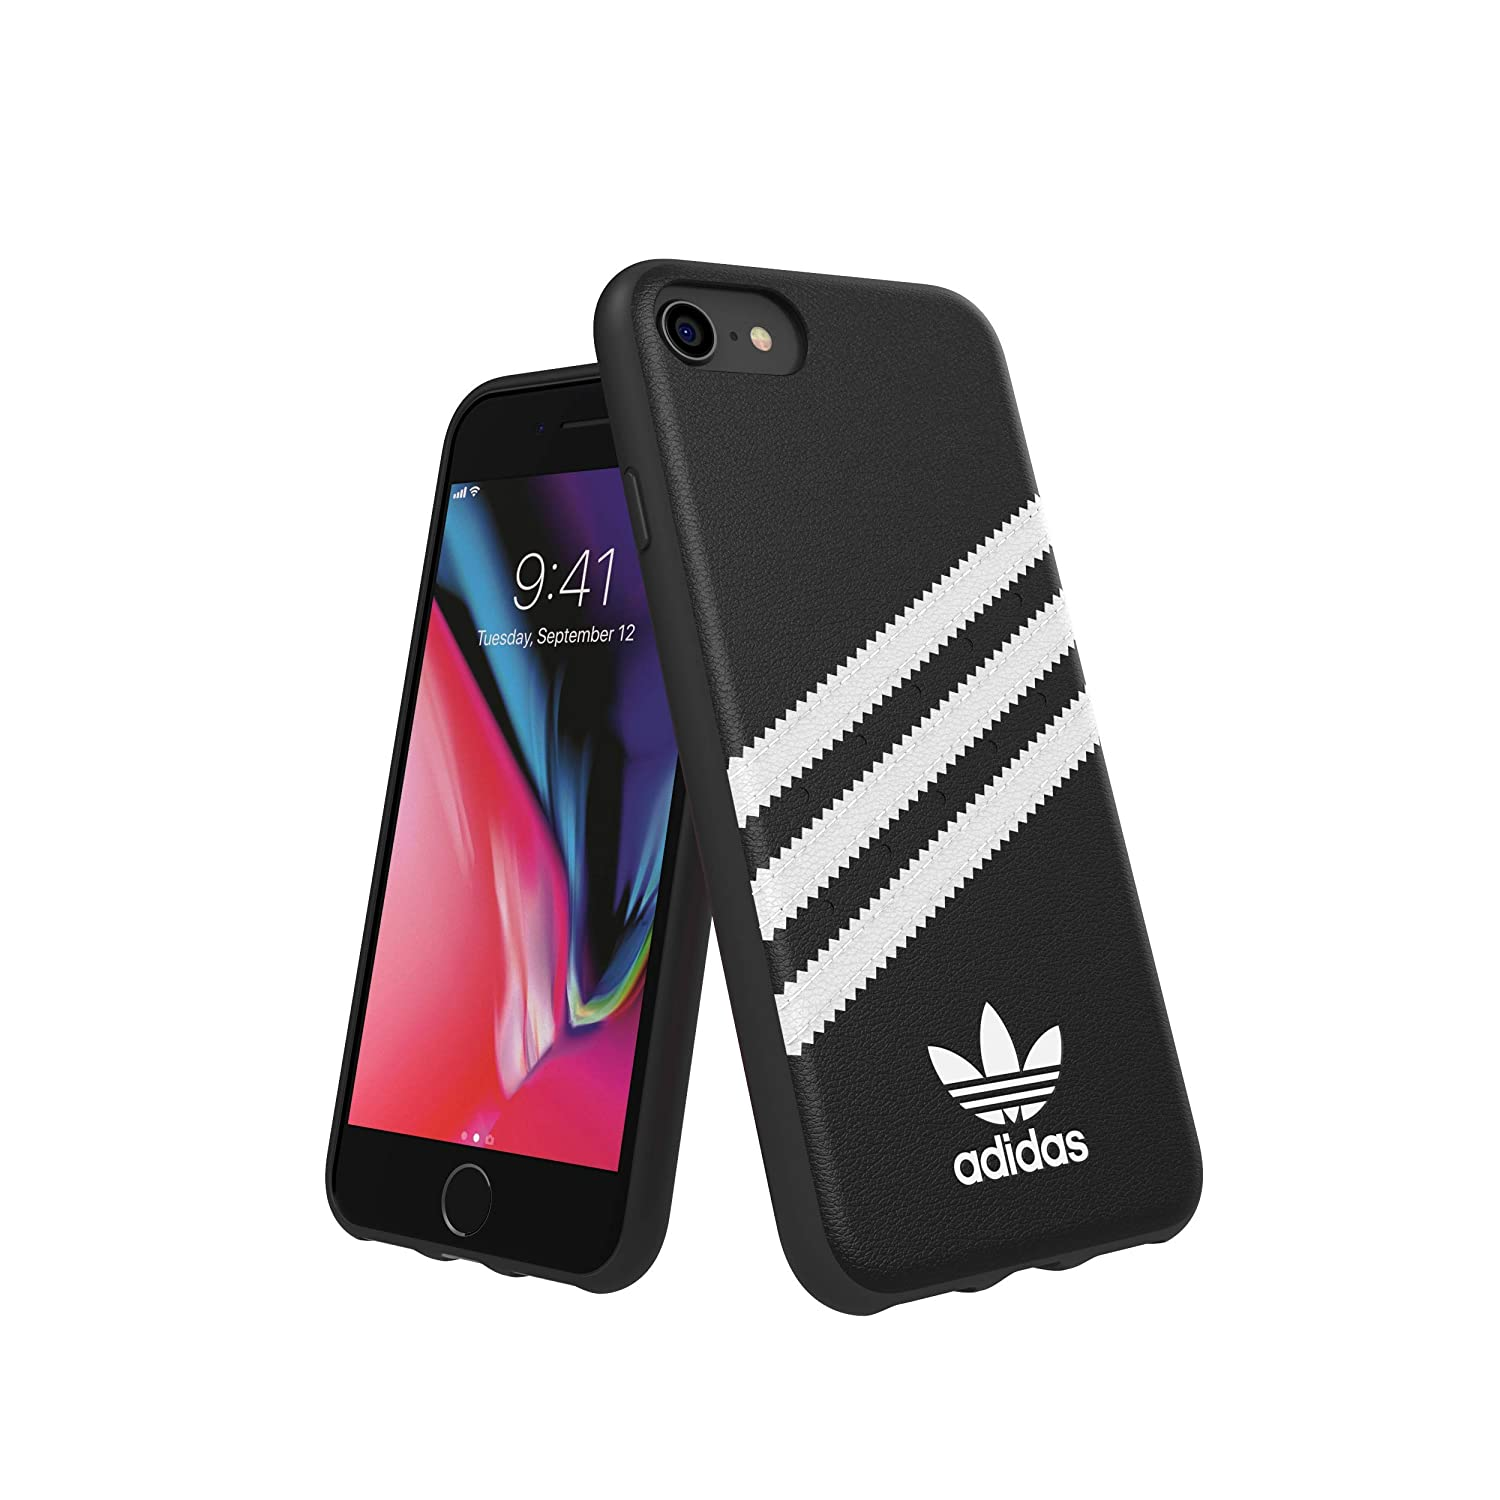 Amazon.com: adidas Originals iPhone 6/6S/7/8 Case ...